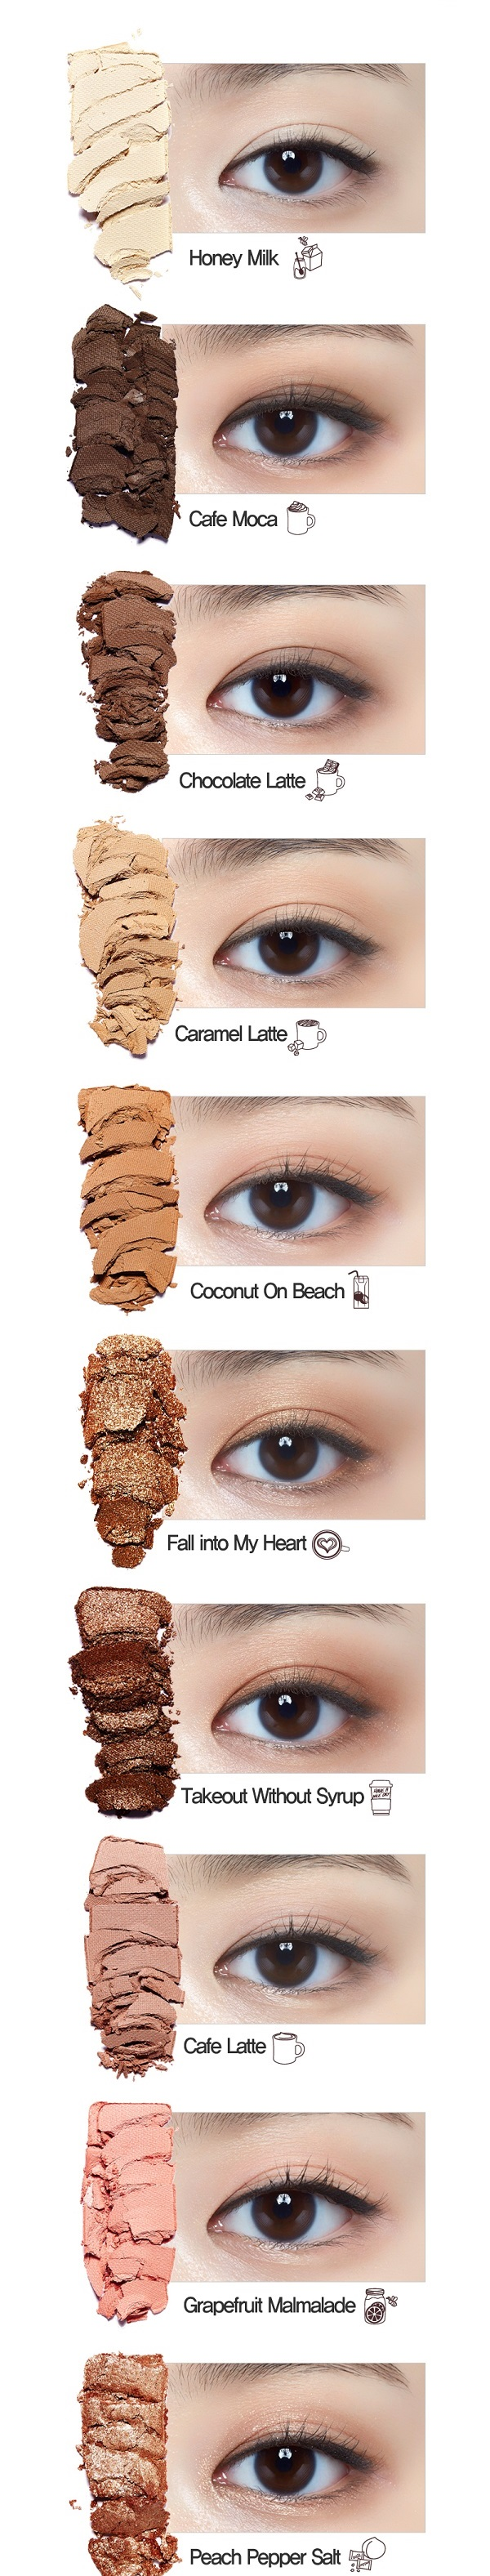 play-color-eyes-cafe-color-selection.jpg